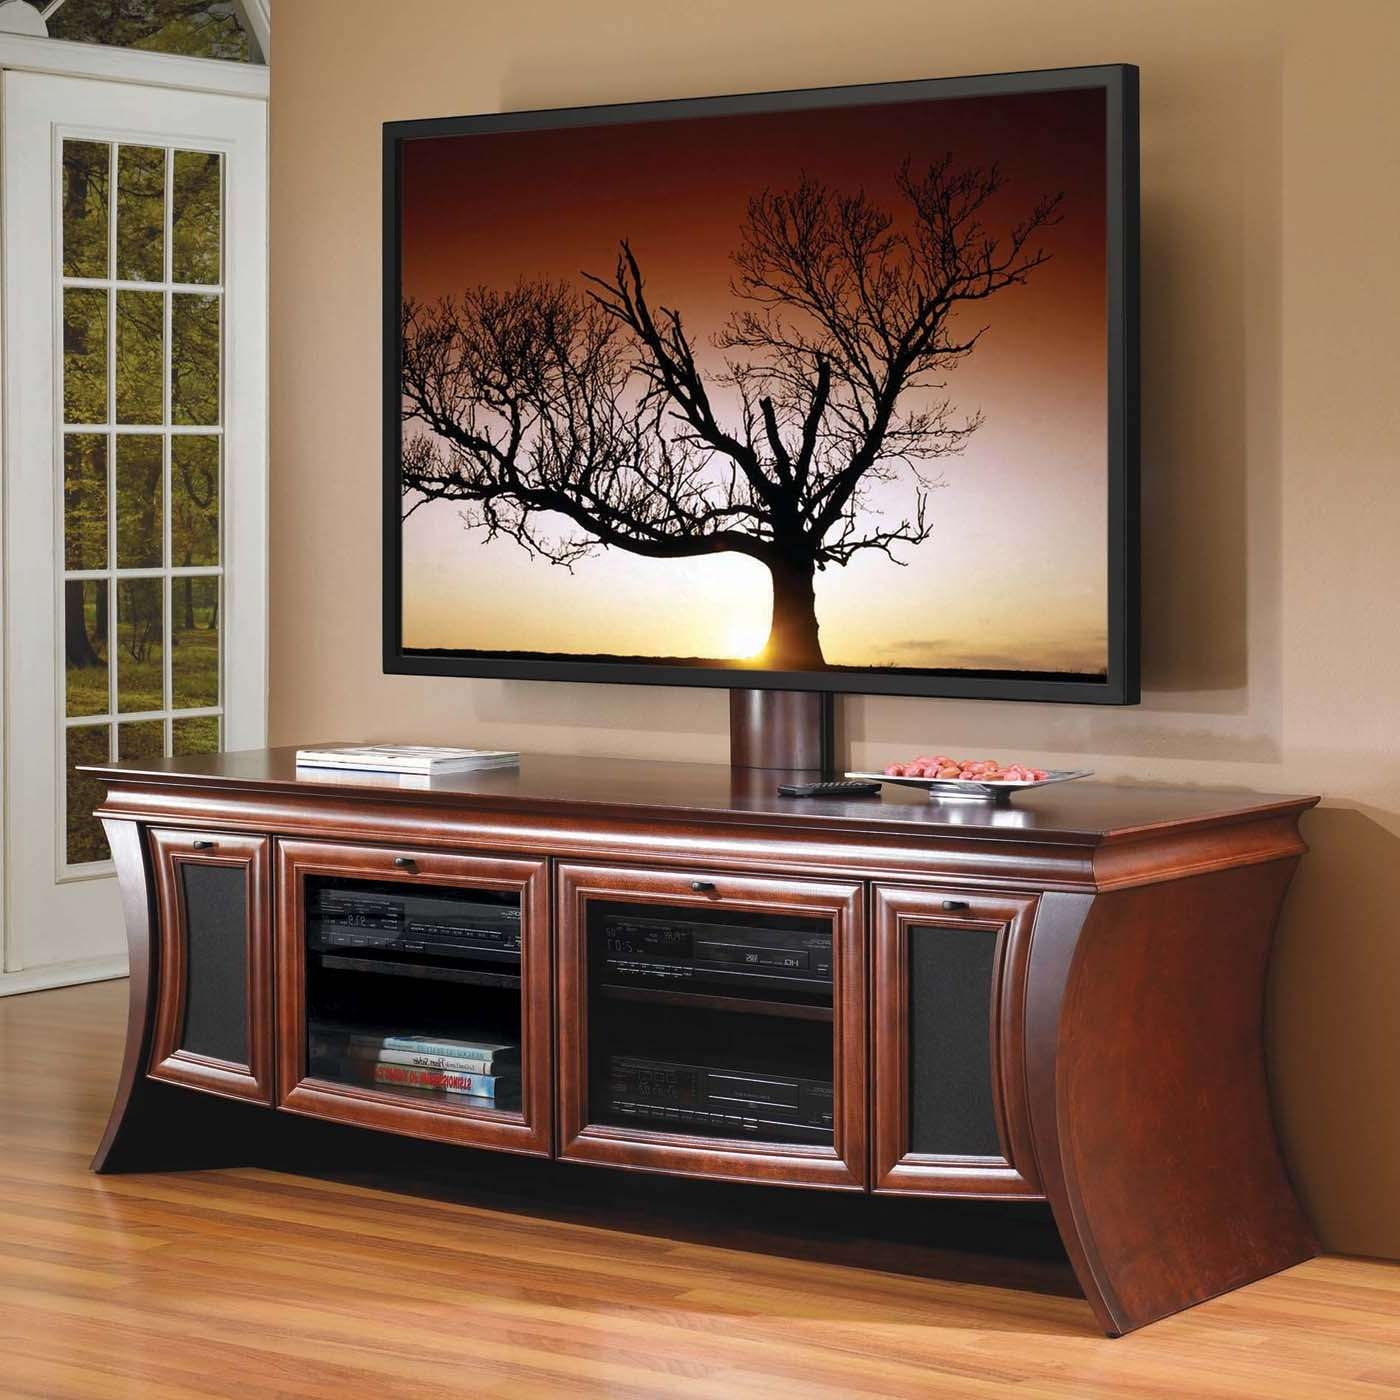 Tv Stands For 55 Inch Flat Screen – Furniture Depot Within Corner Tv Stands For 60 Inch Flat Screens (View 14 of 15)